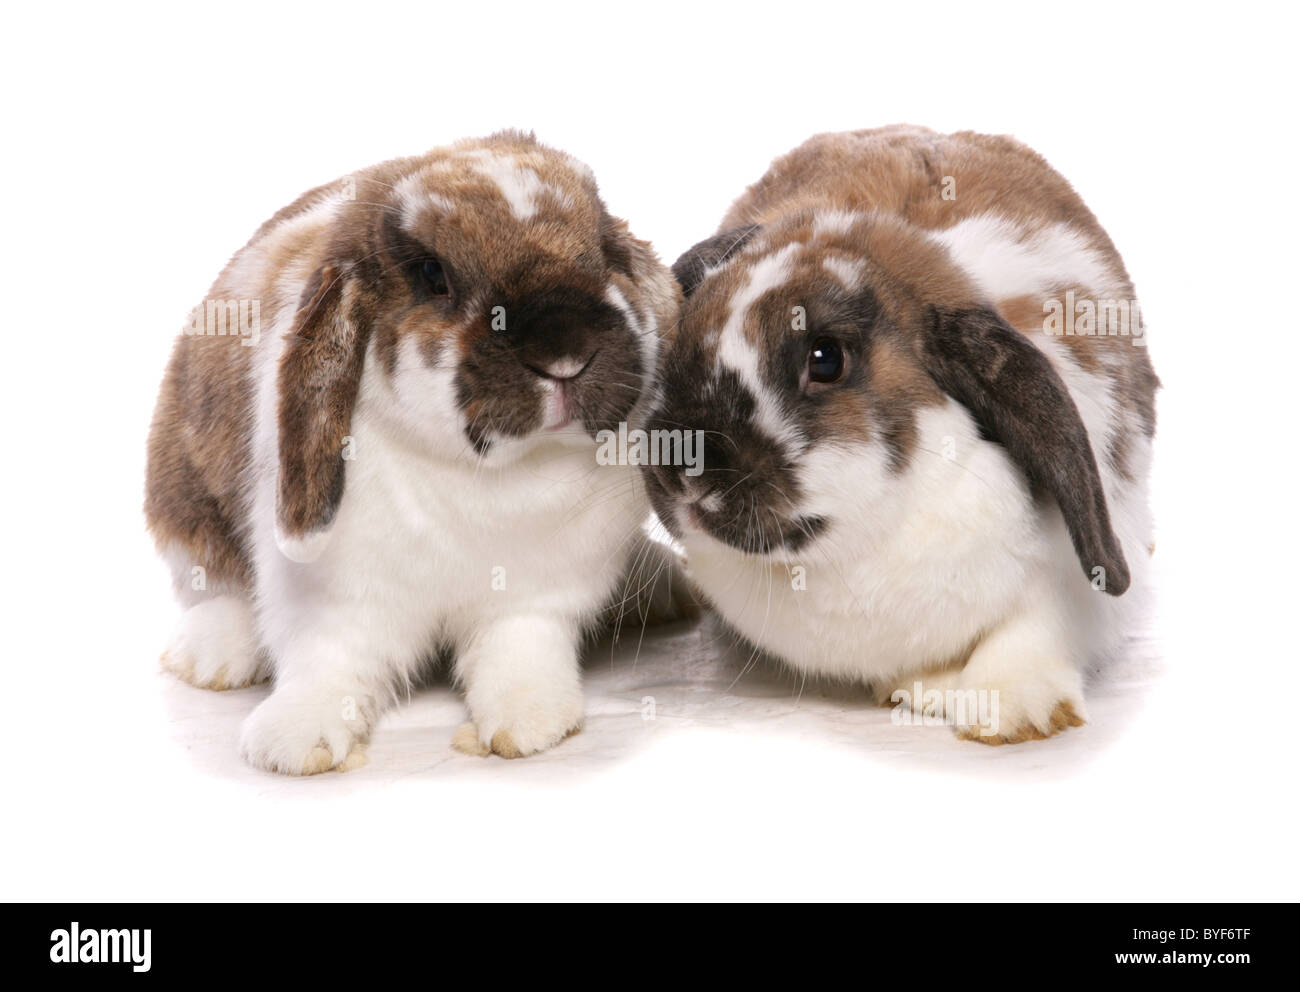 two lop eared rabbits sitting studio - Stock Image